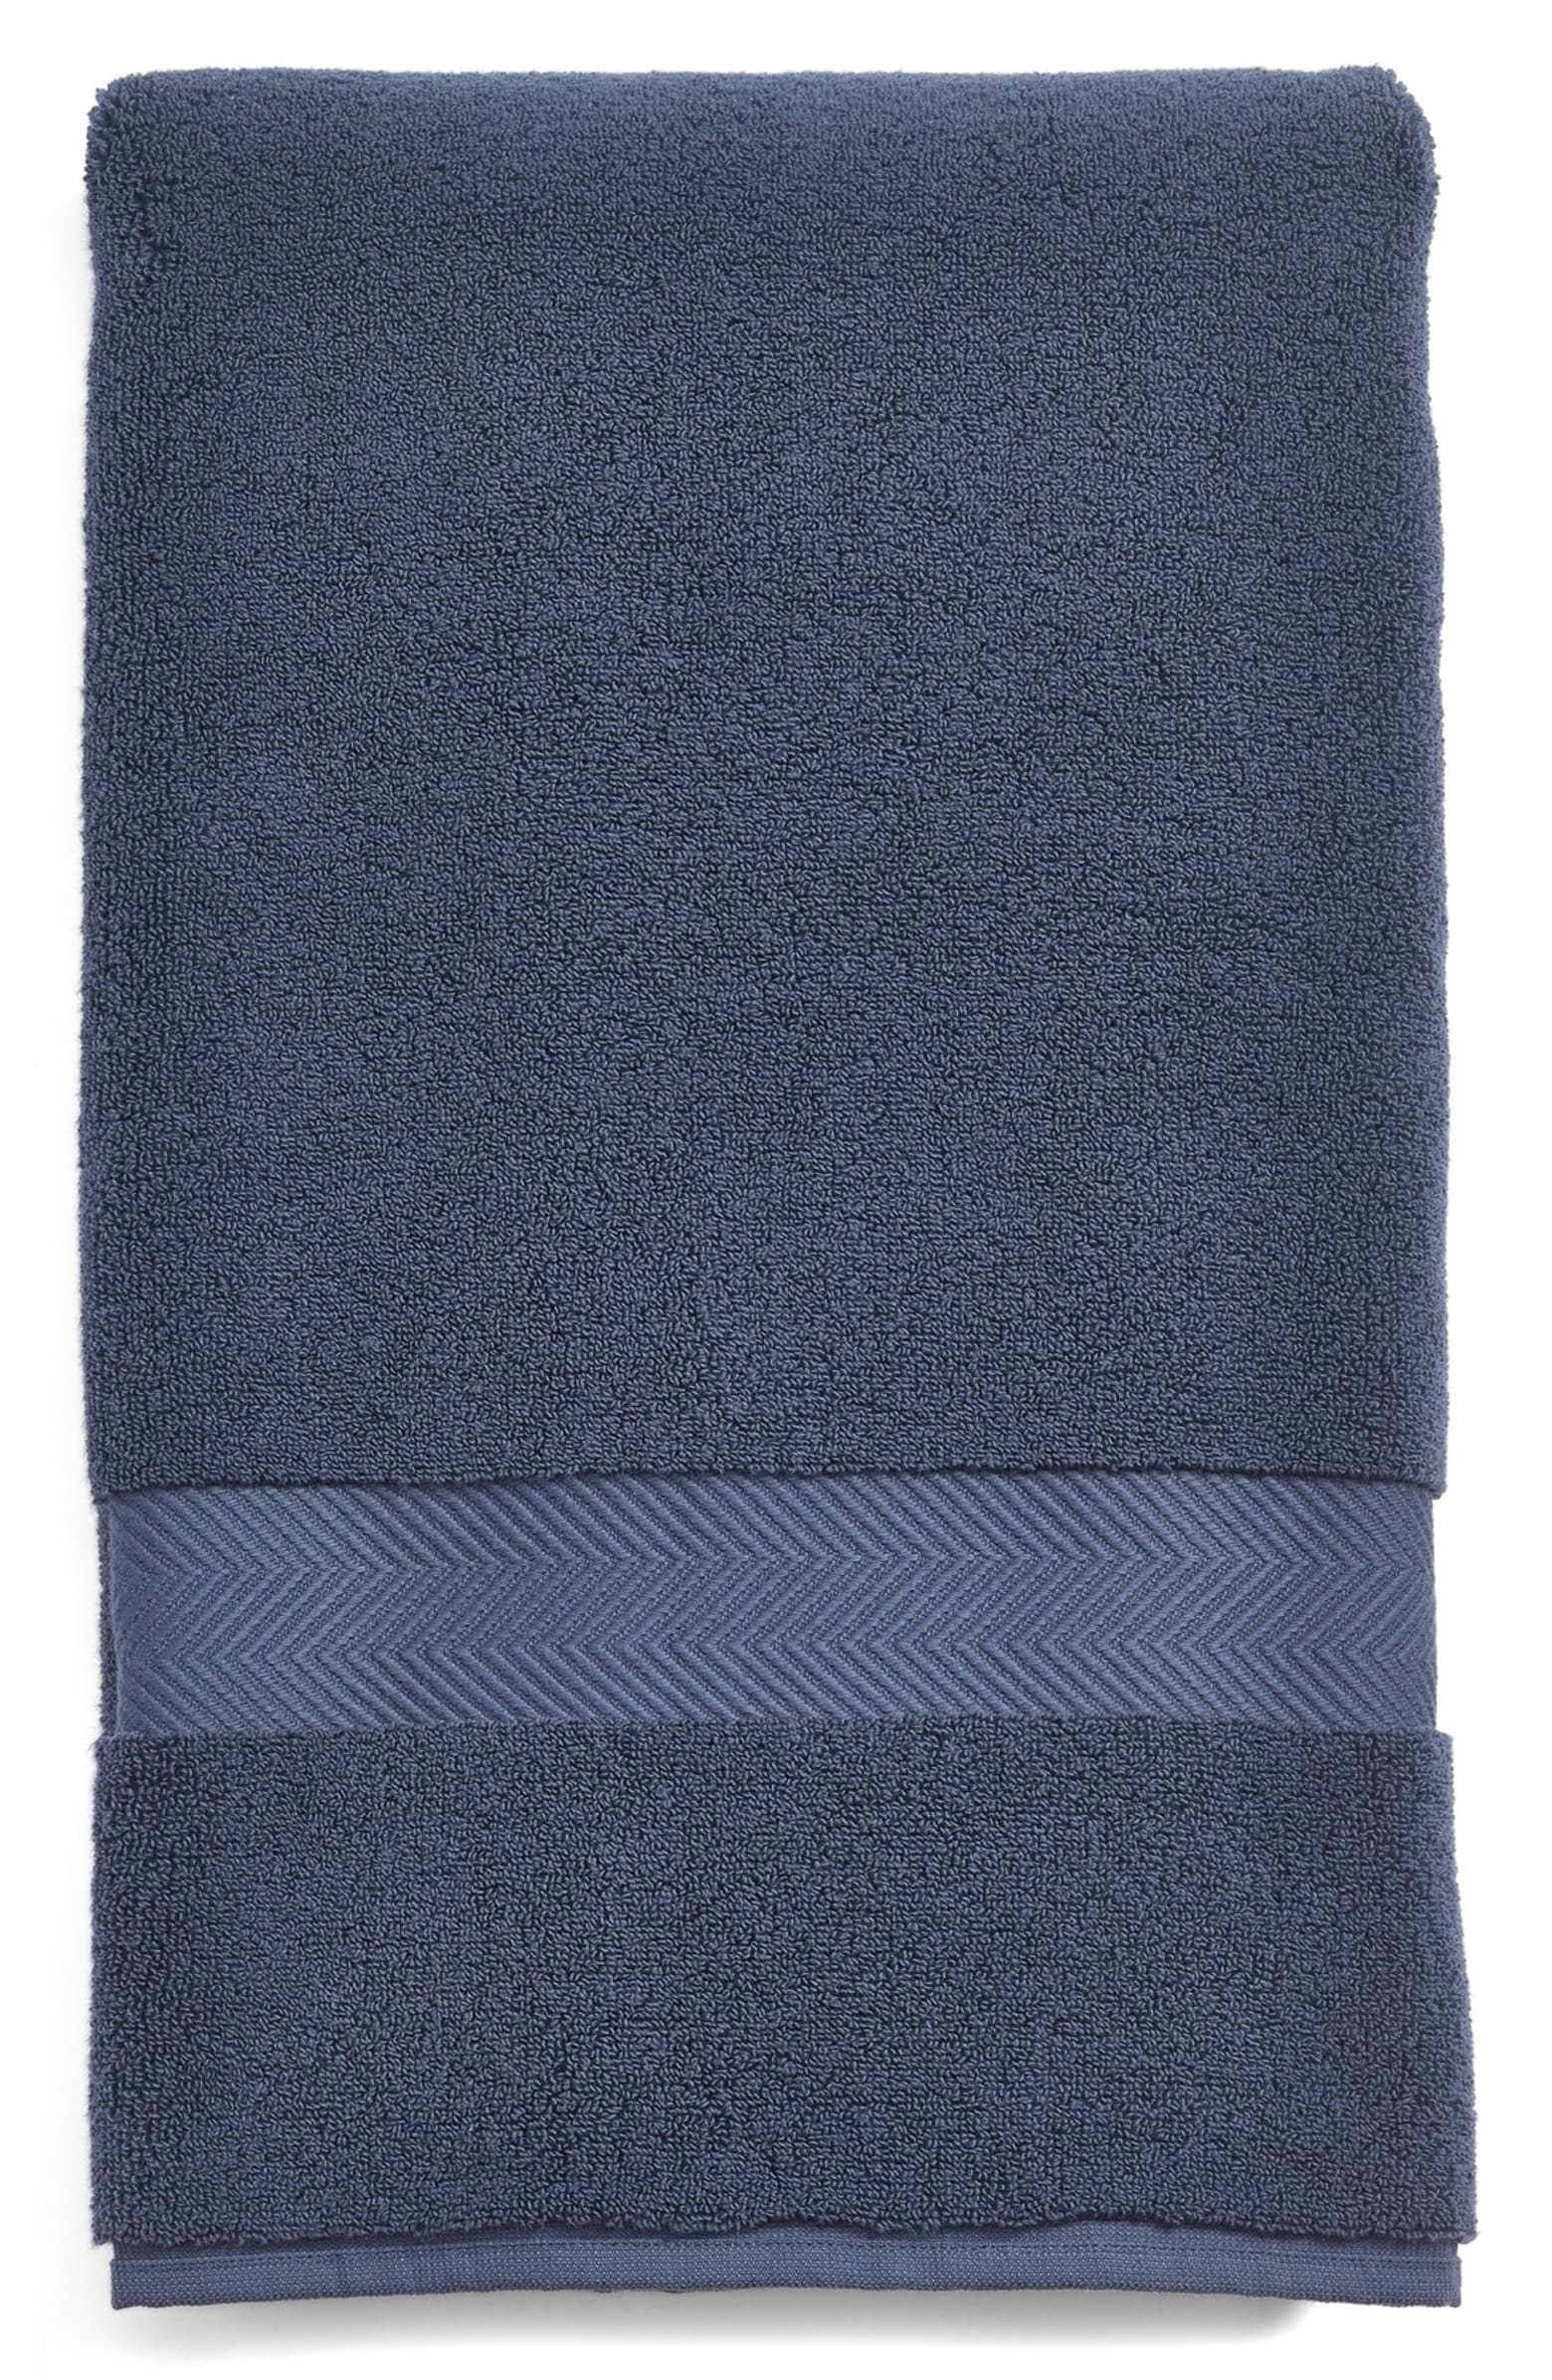 The towel in navy blue